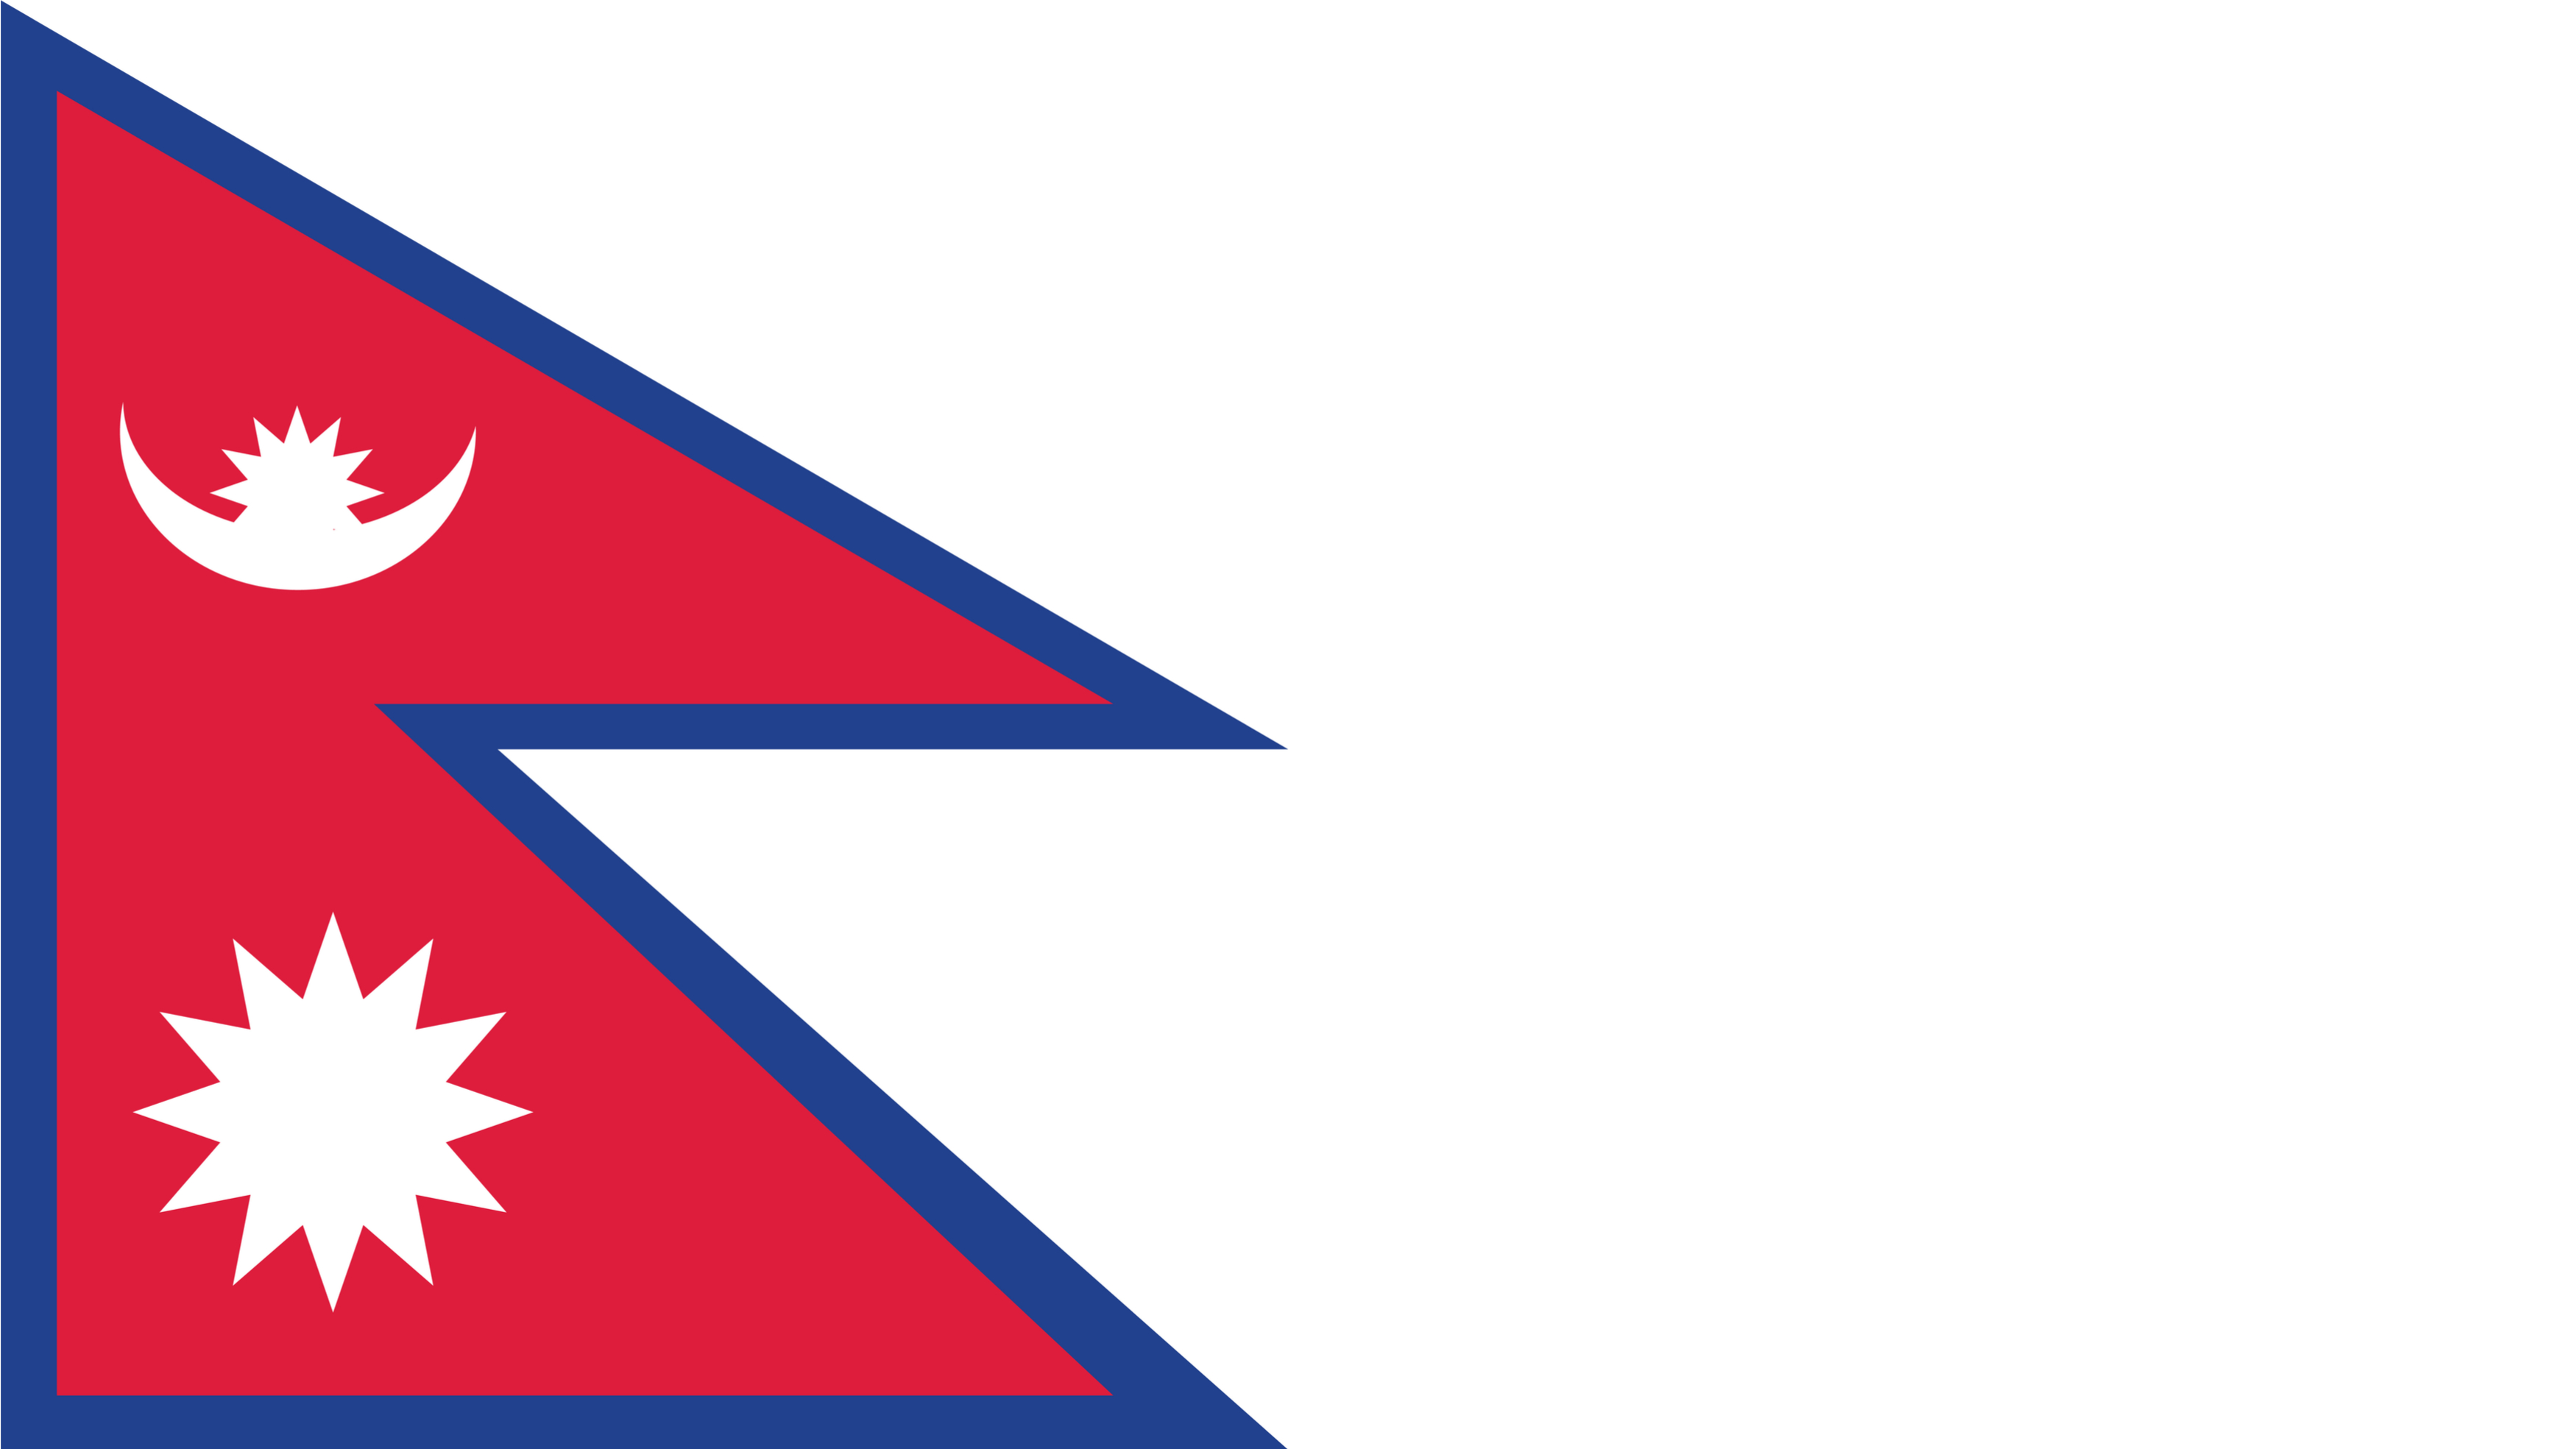 The flag of Nepal is not rectangular.